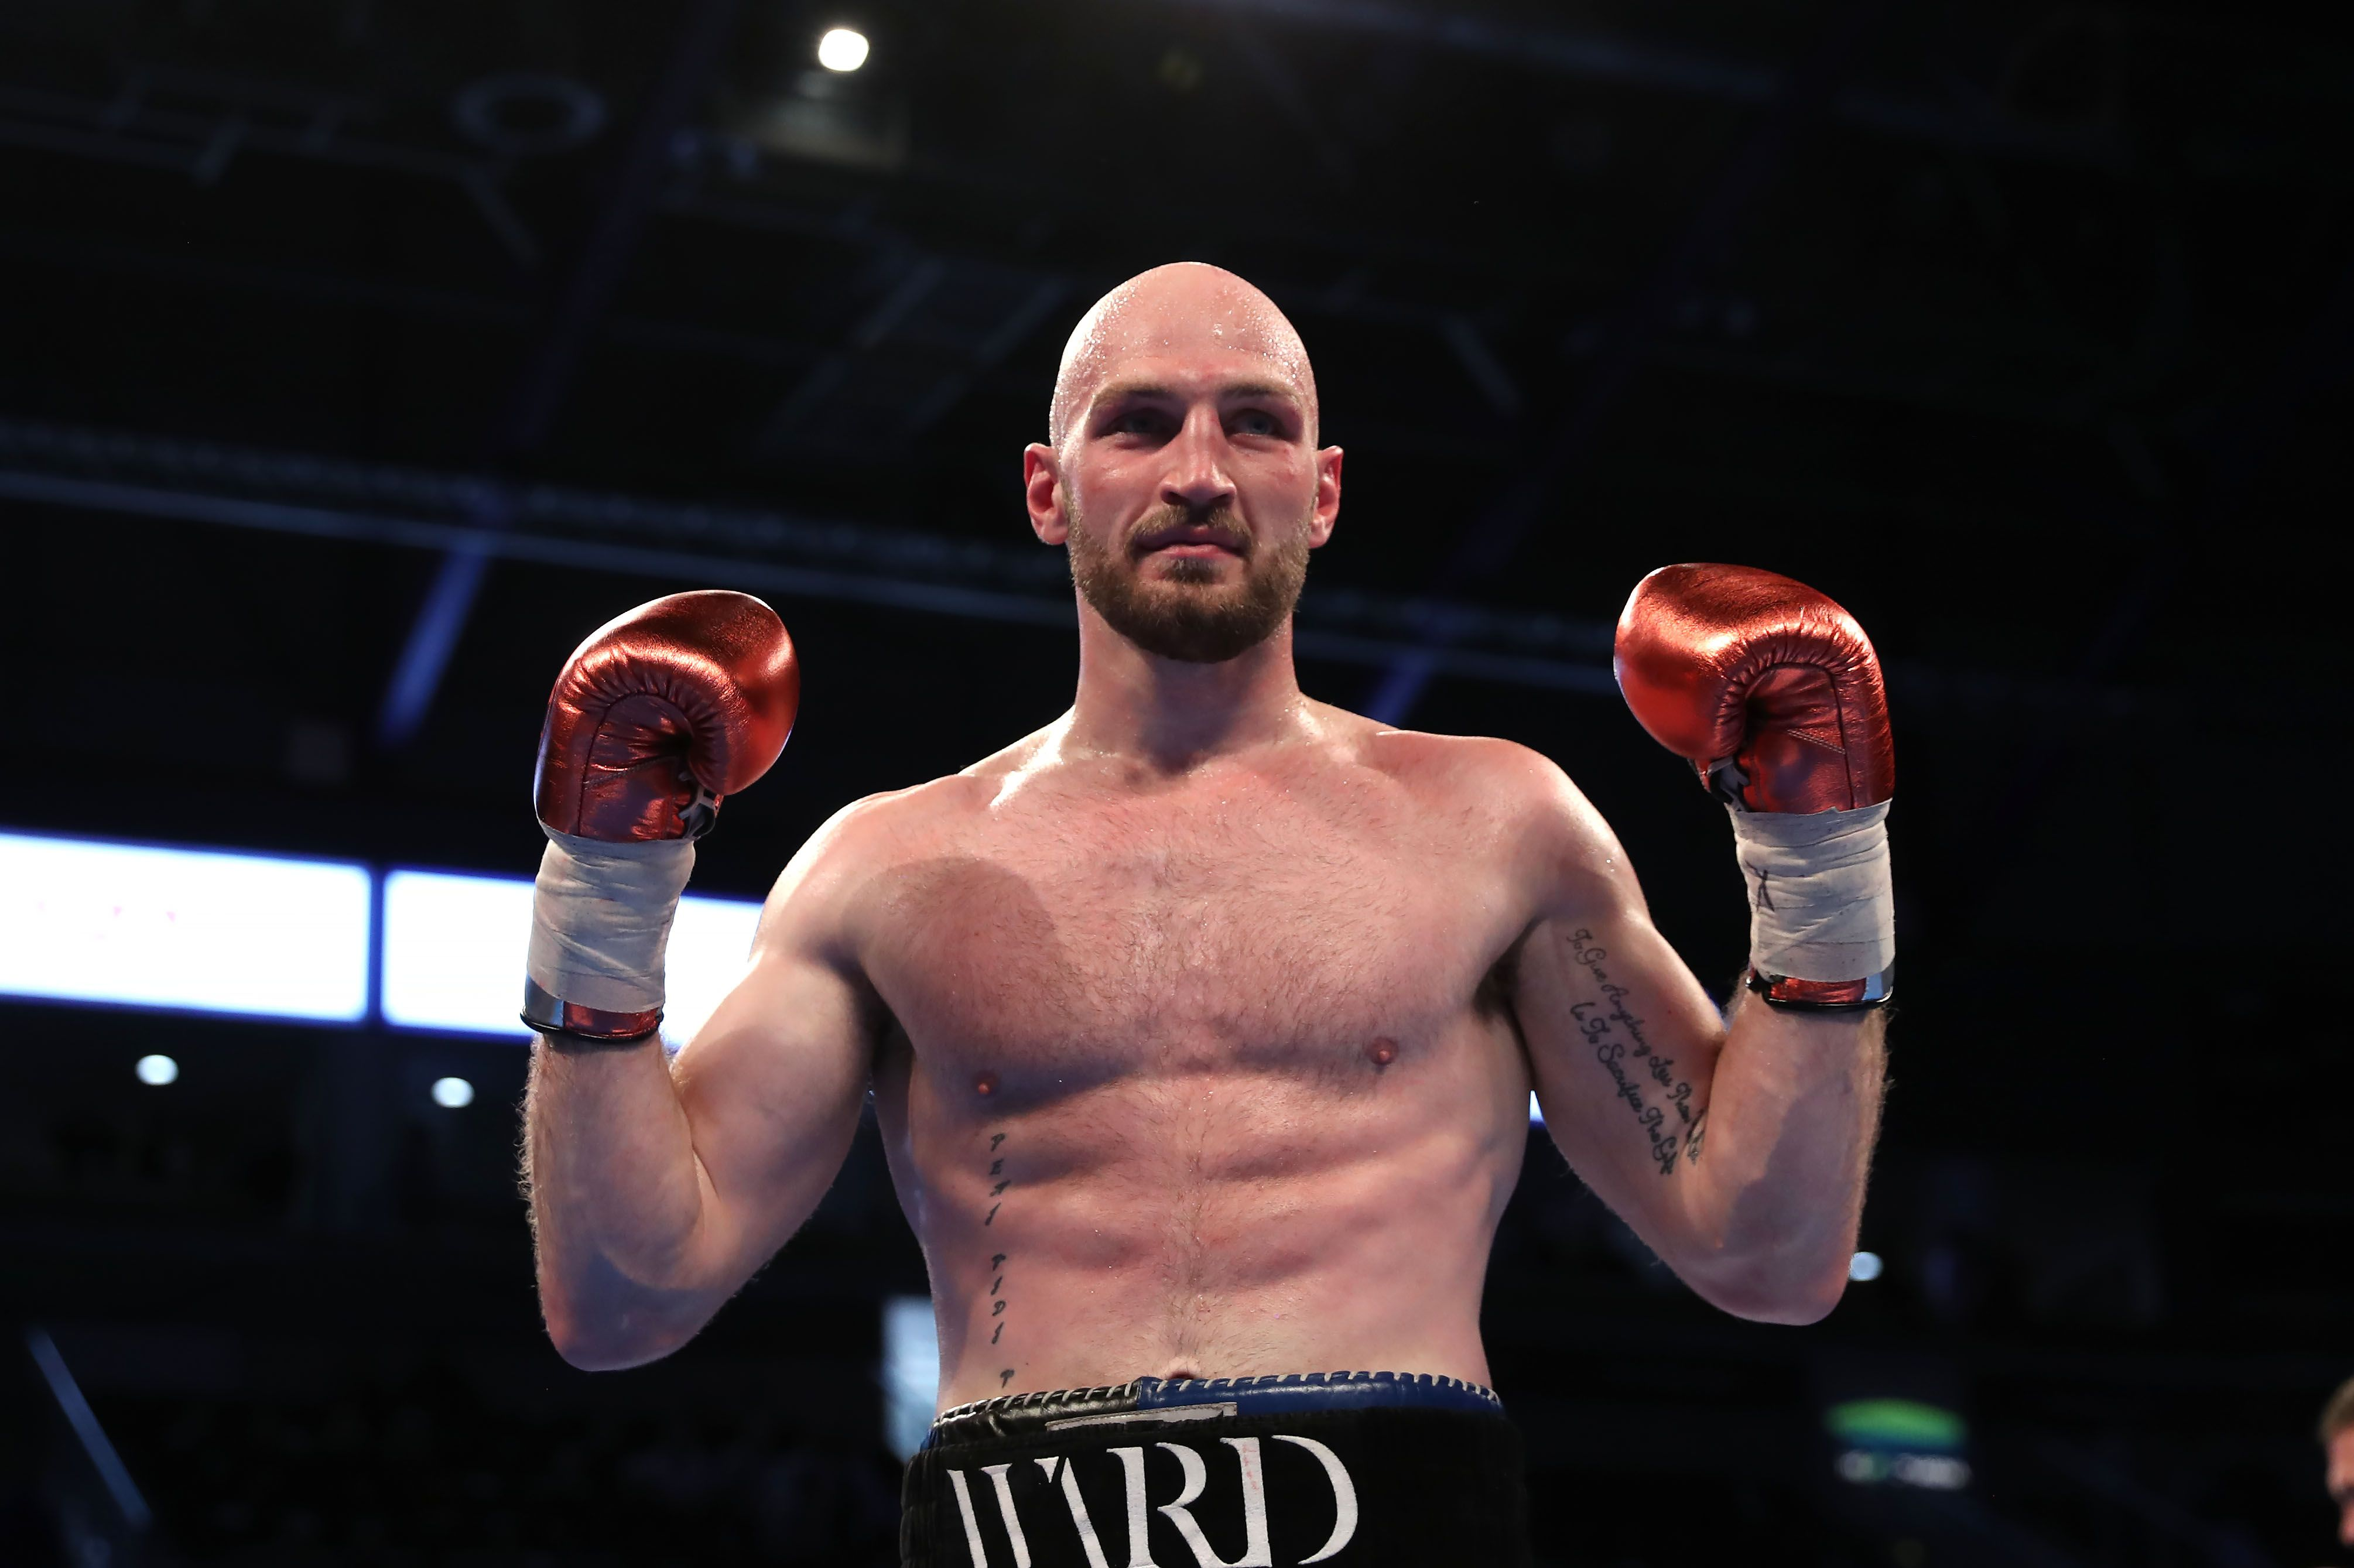 Steven Ward will face the former World amateur silver medalist in Almaty on February 27